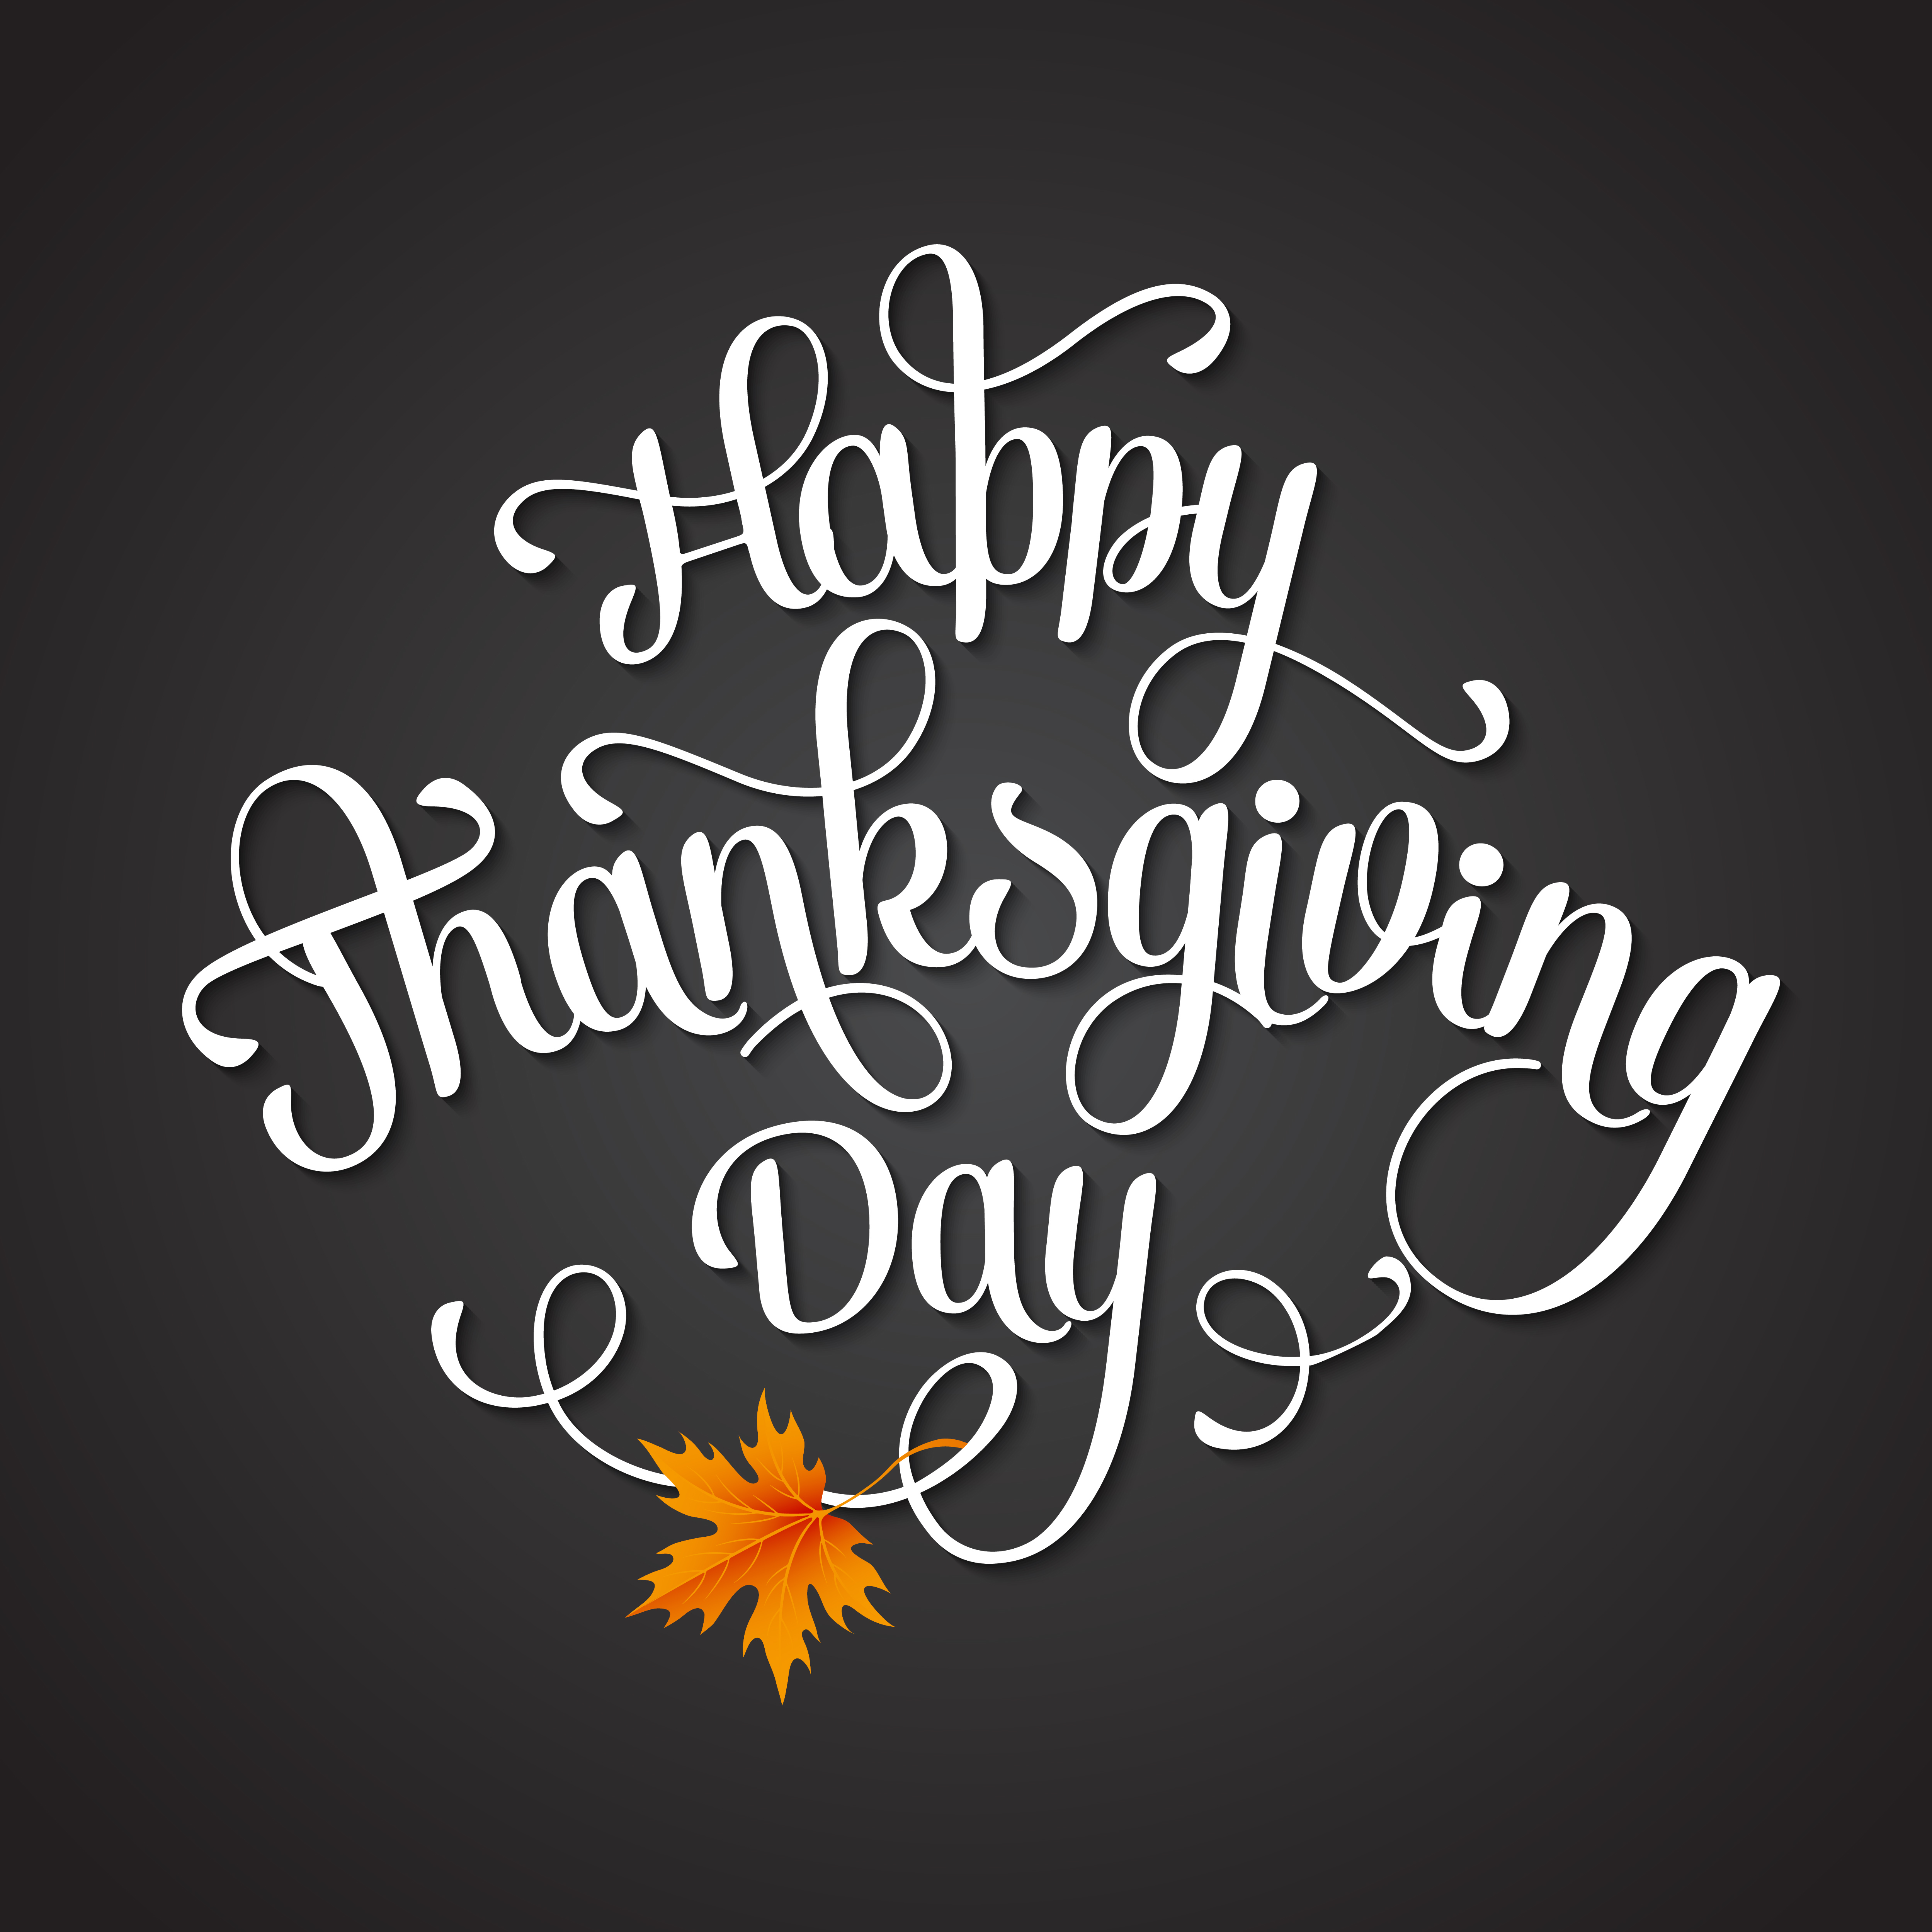 black canvas with white font that says Happy Thanksgiving Day in white script